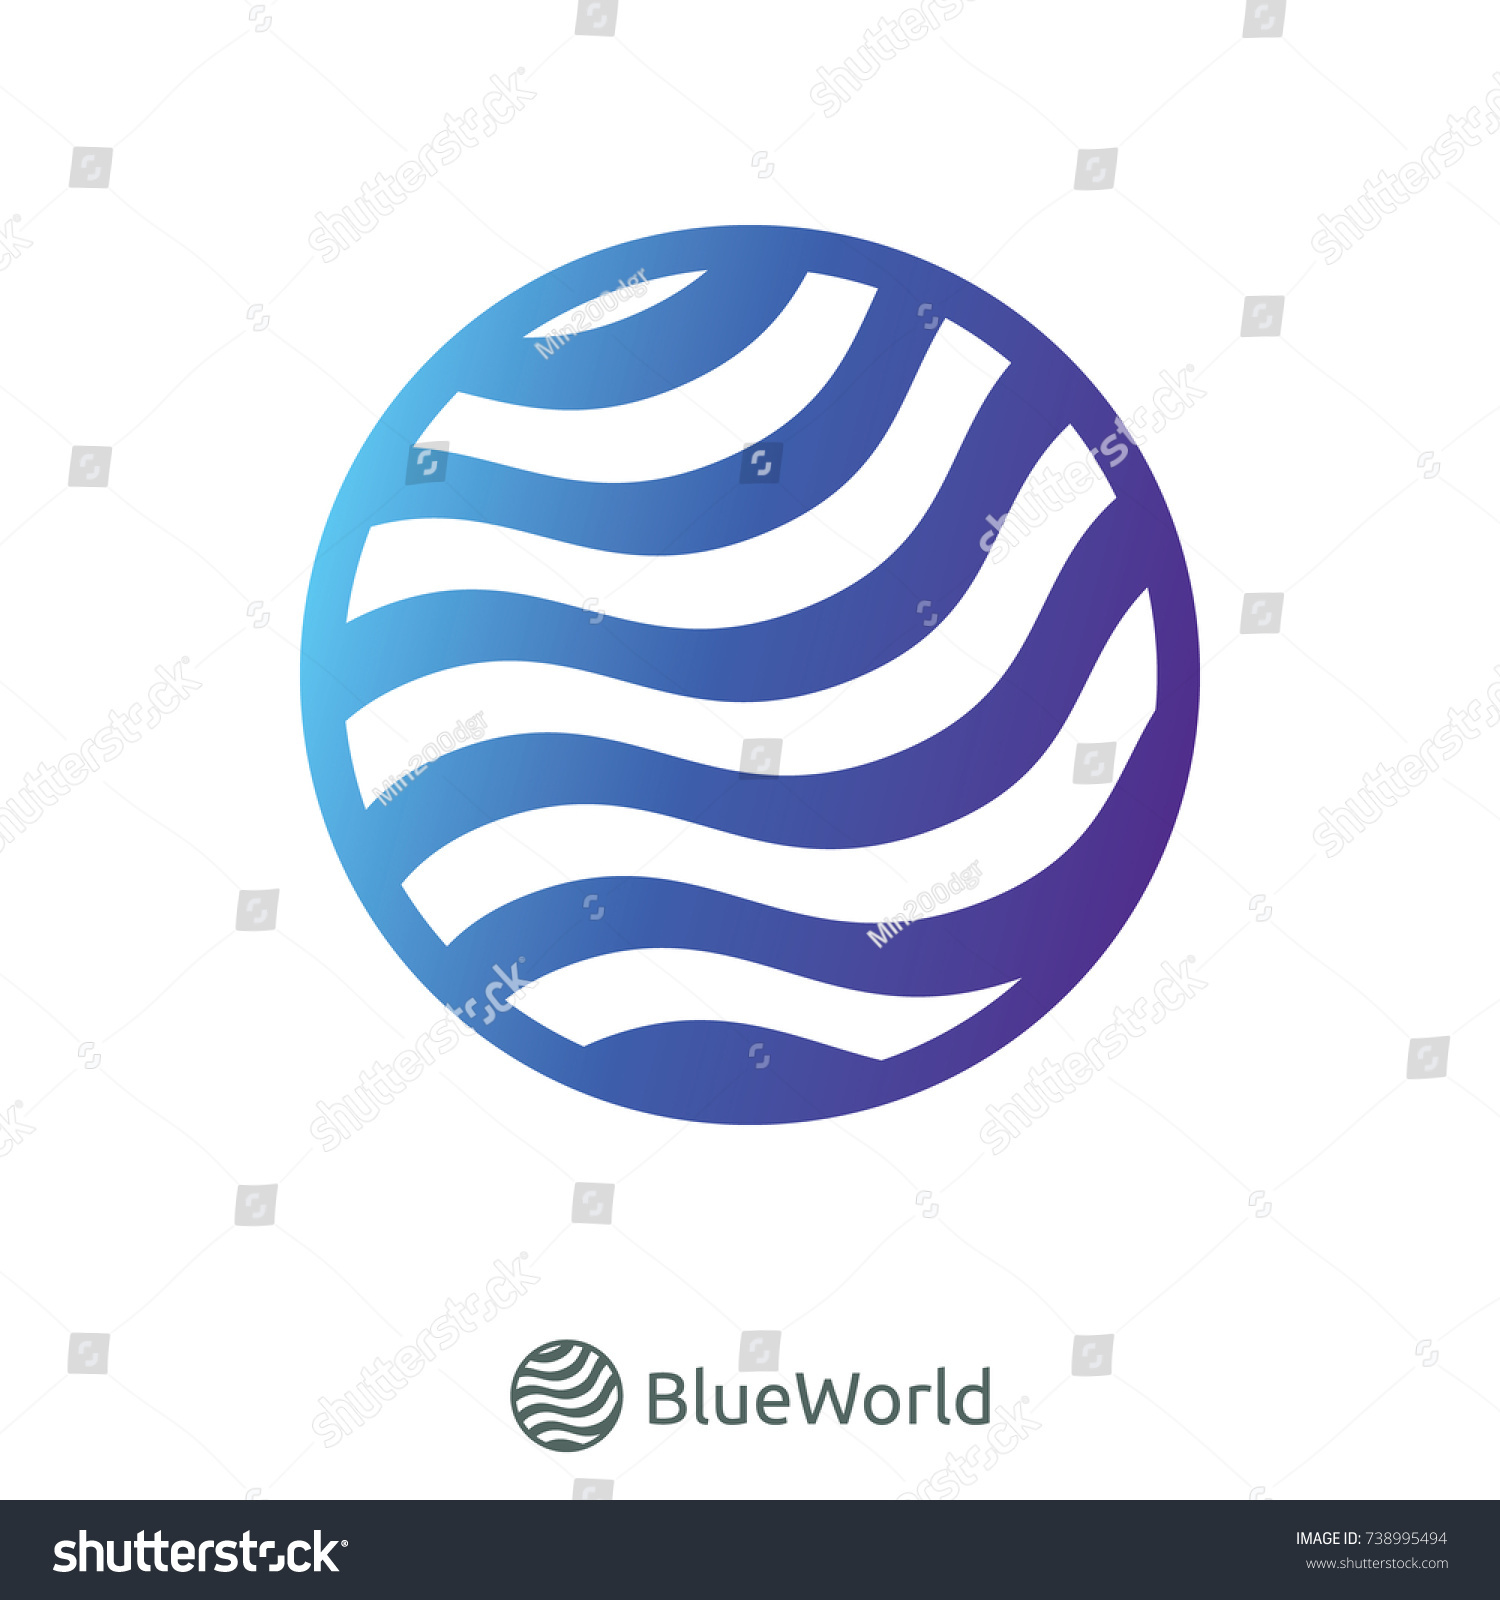 Water wave river ocean logo symbol stock vector 738995494 water wave river ocean logo symbol for internet data concept or nature services biocorpaavc Gallery